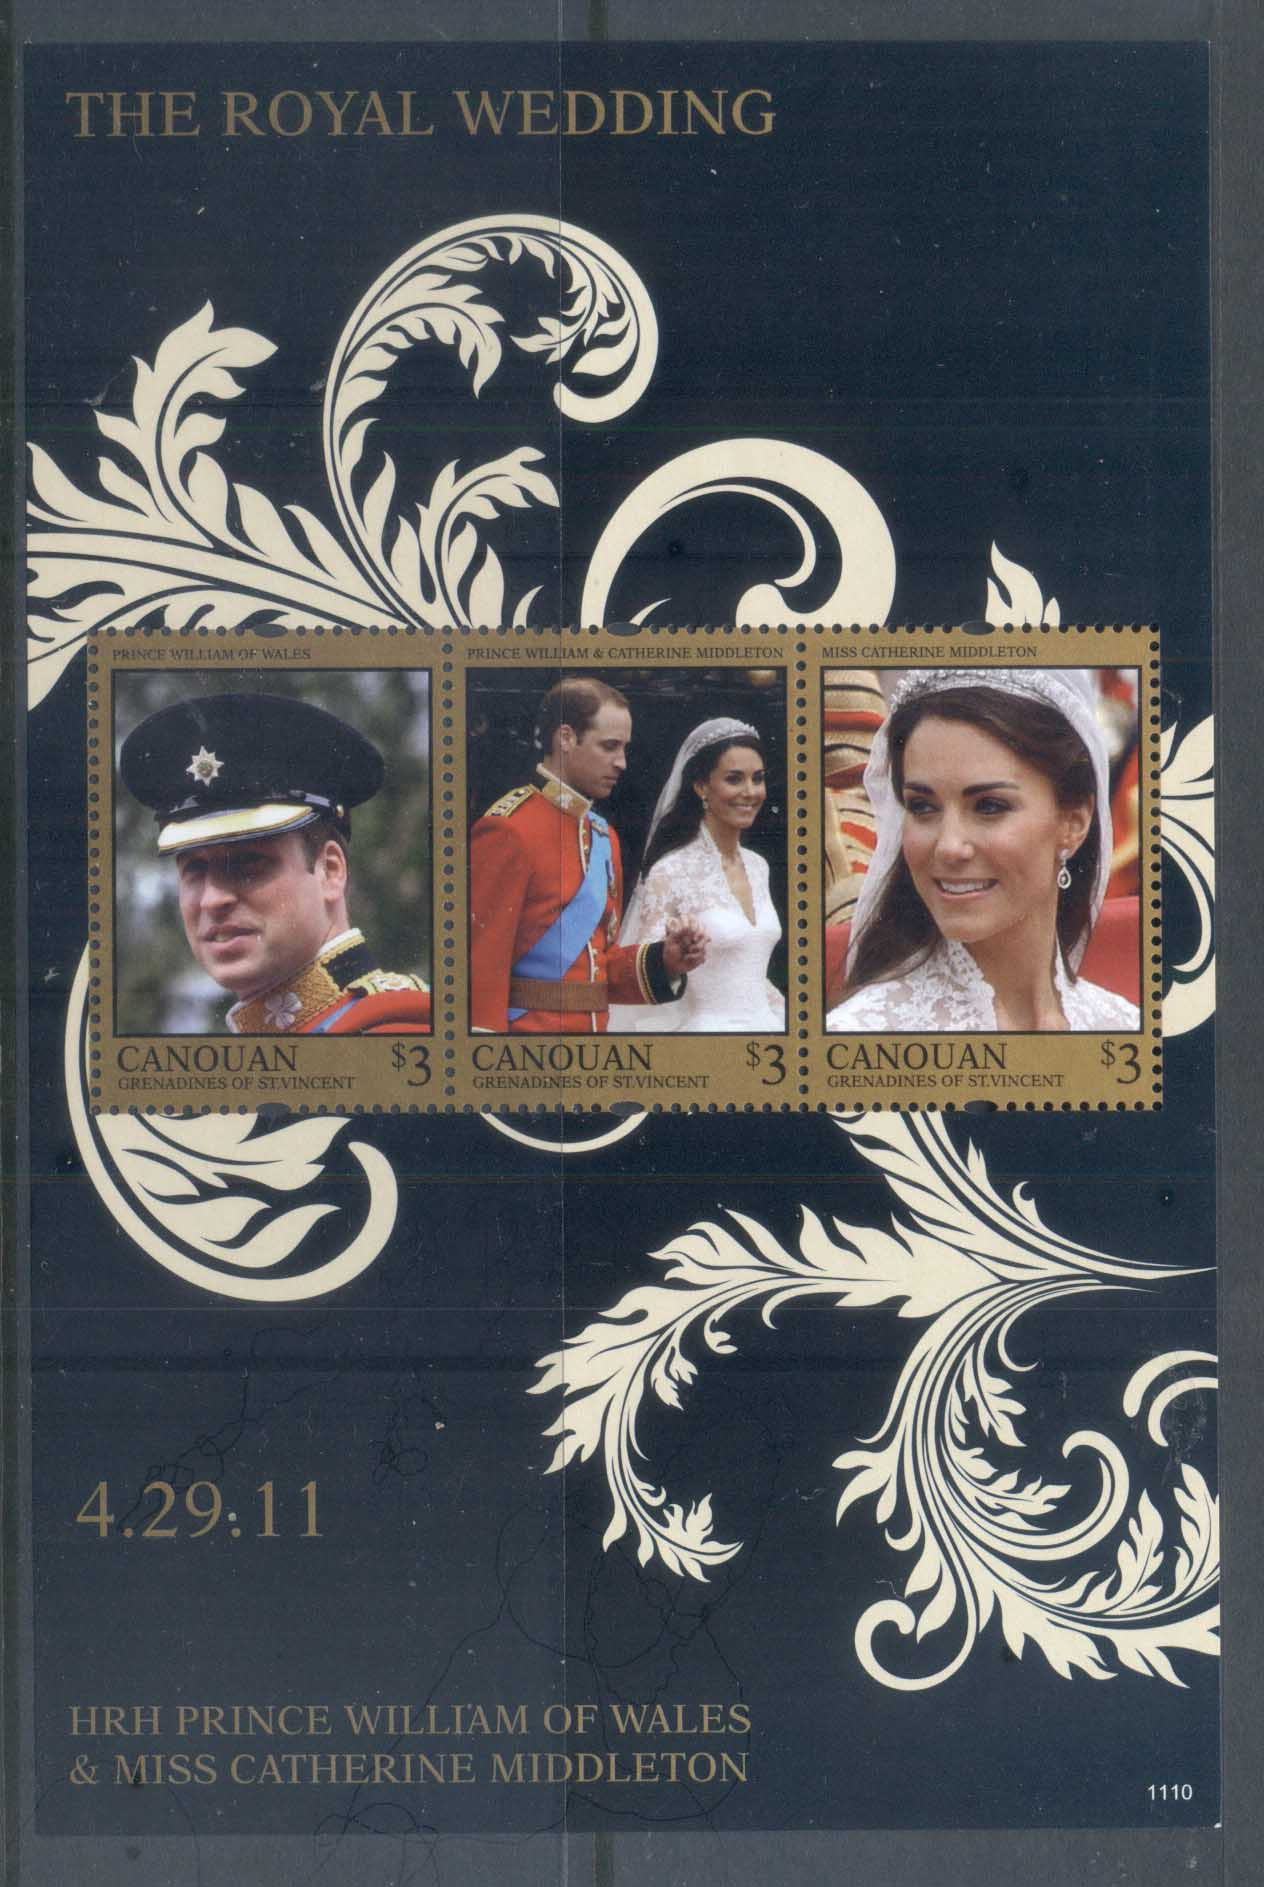 St Vincent Canouan 2011 Royal Wedding William & Kate #1110 $3 MS MUH